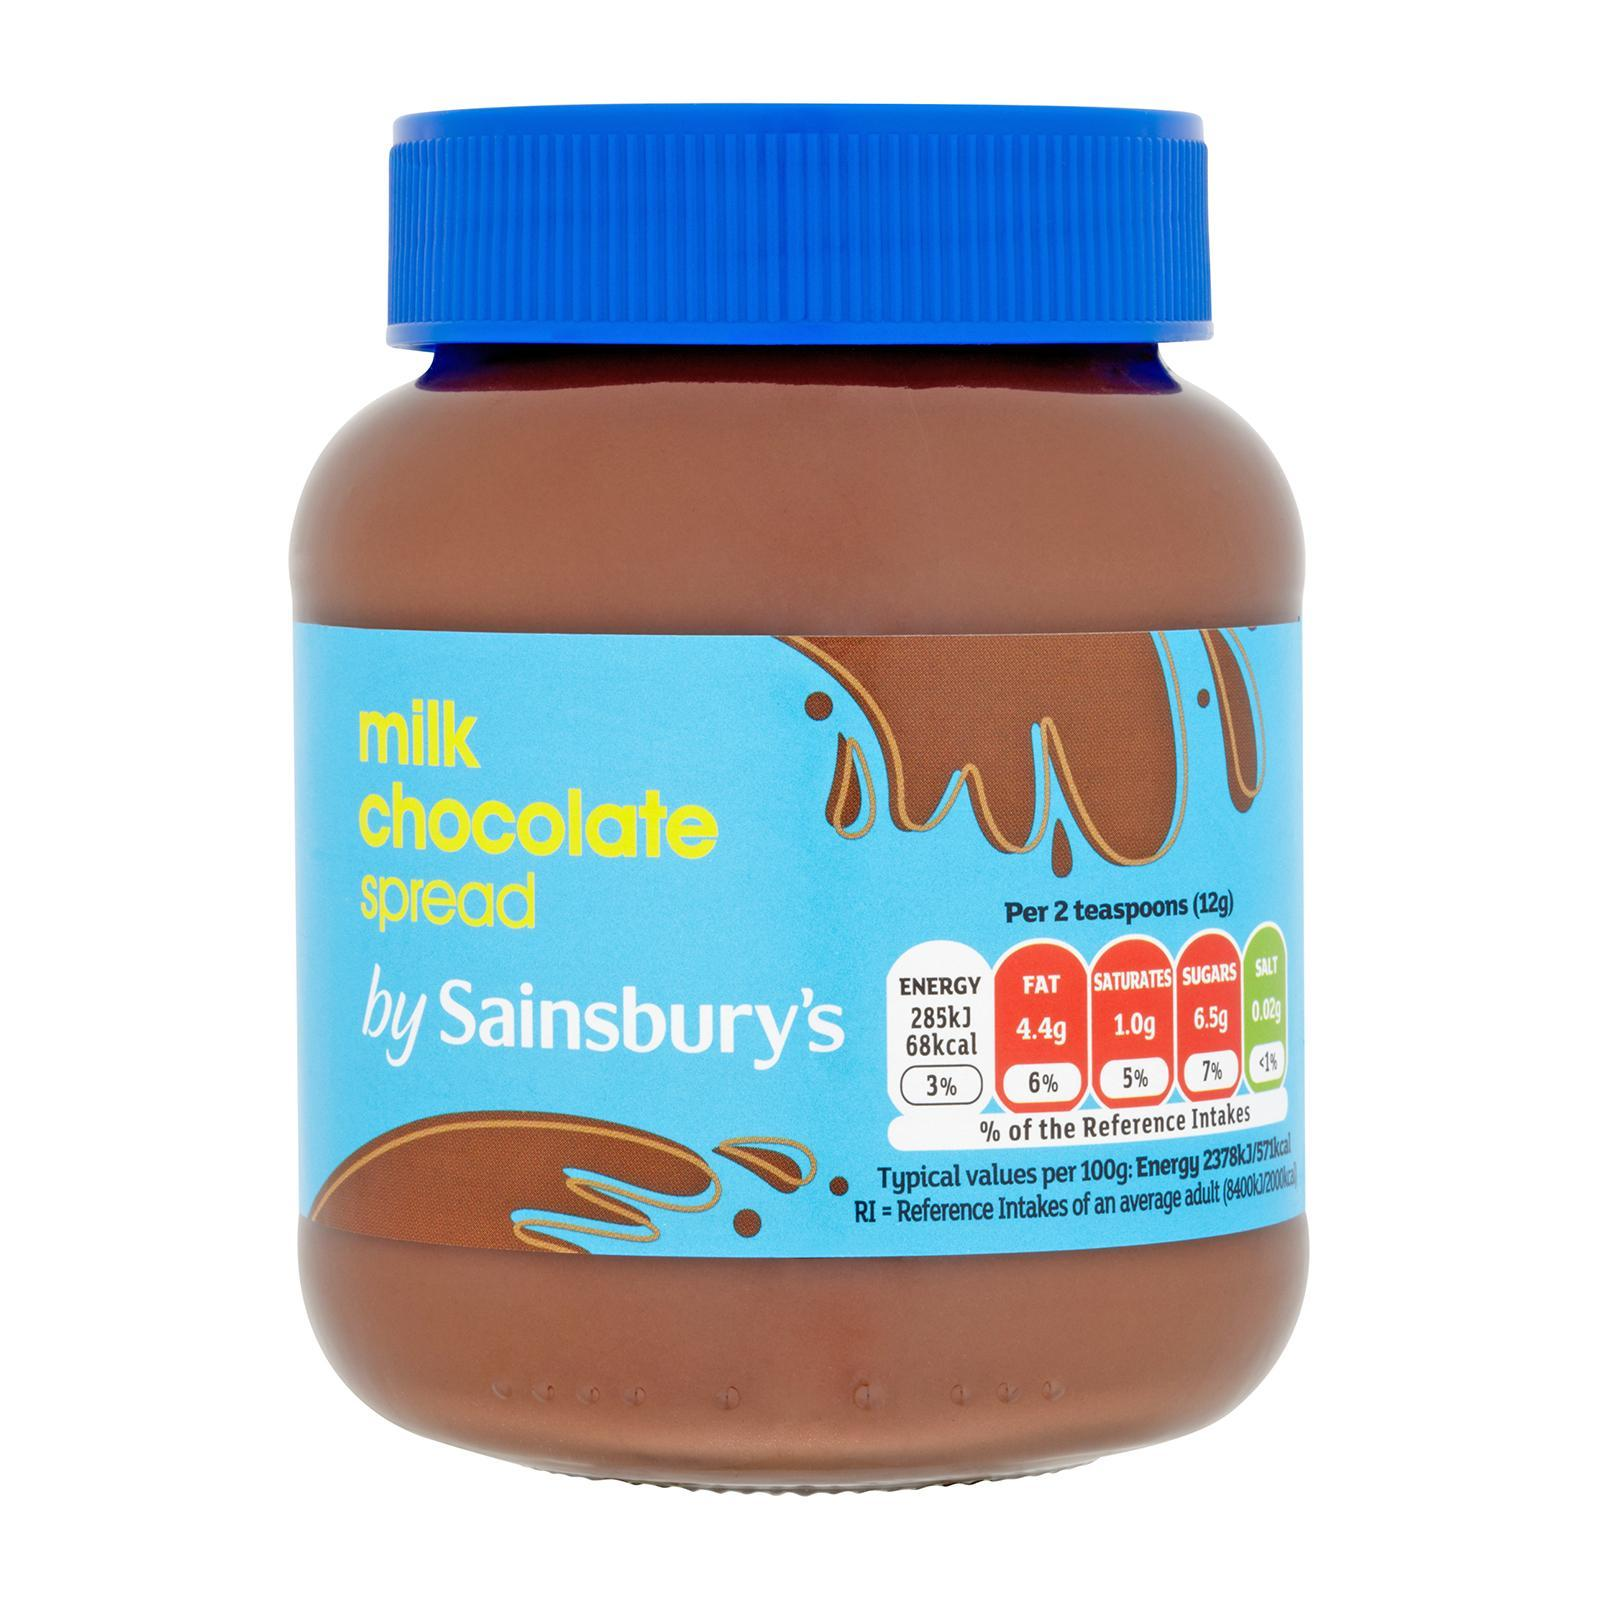 Sainsbury's Milk Chocolate Spread Chocolate